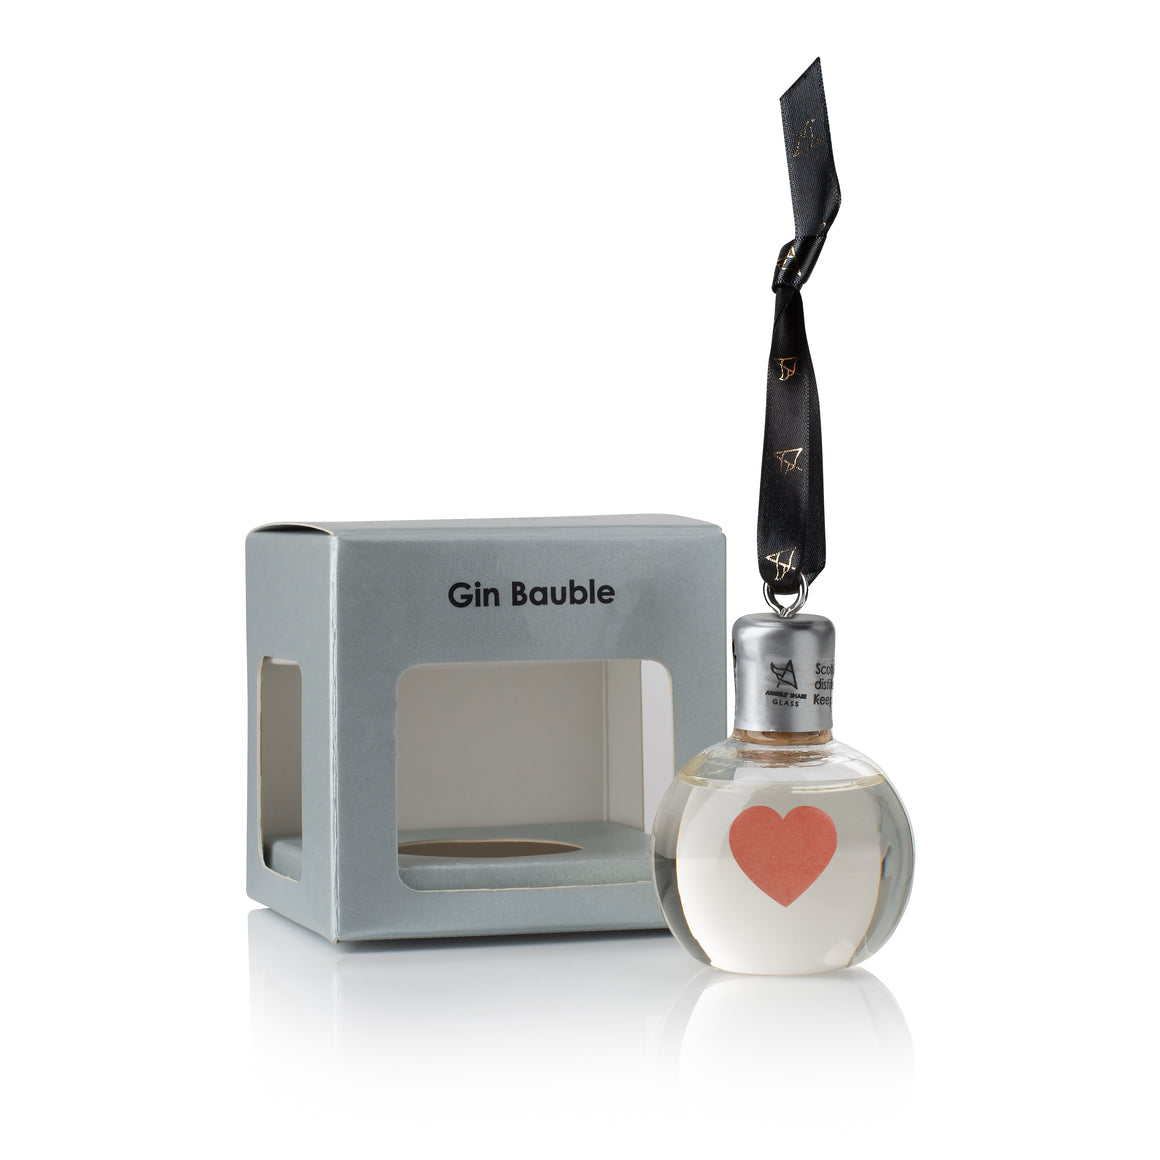 Glass Gin Baubles with Love heart Tattoo